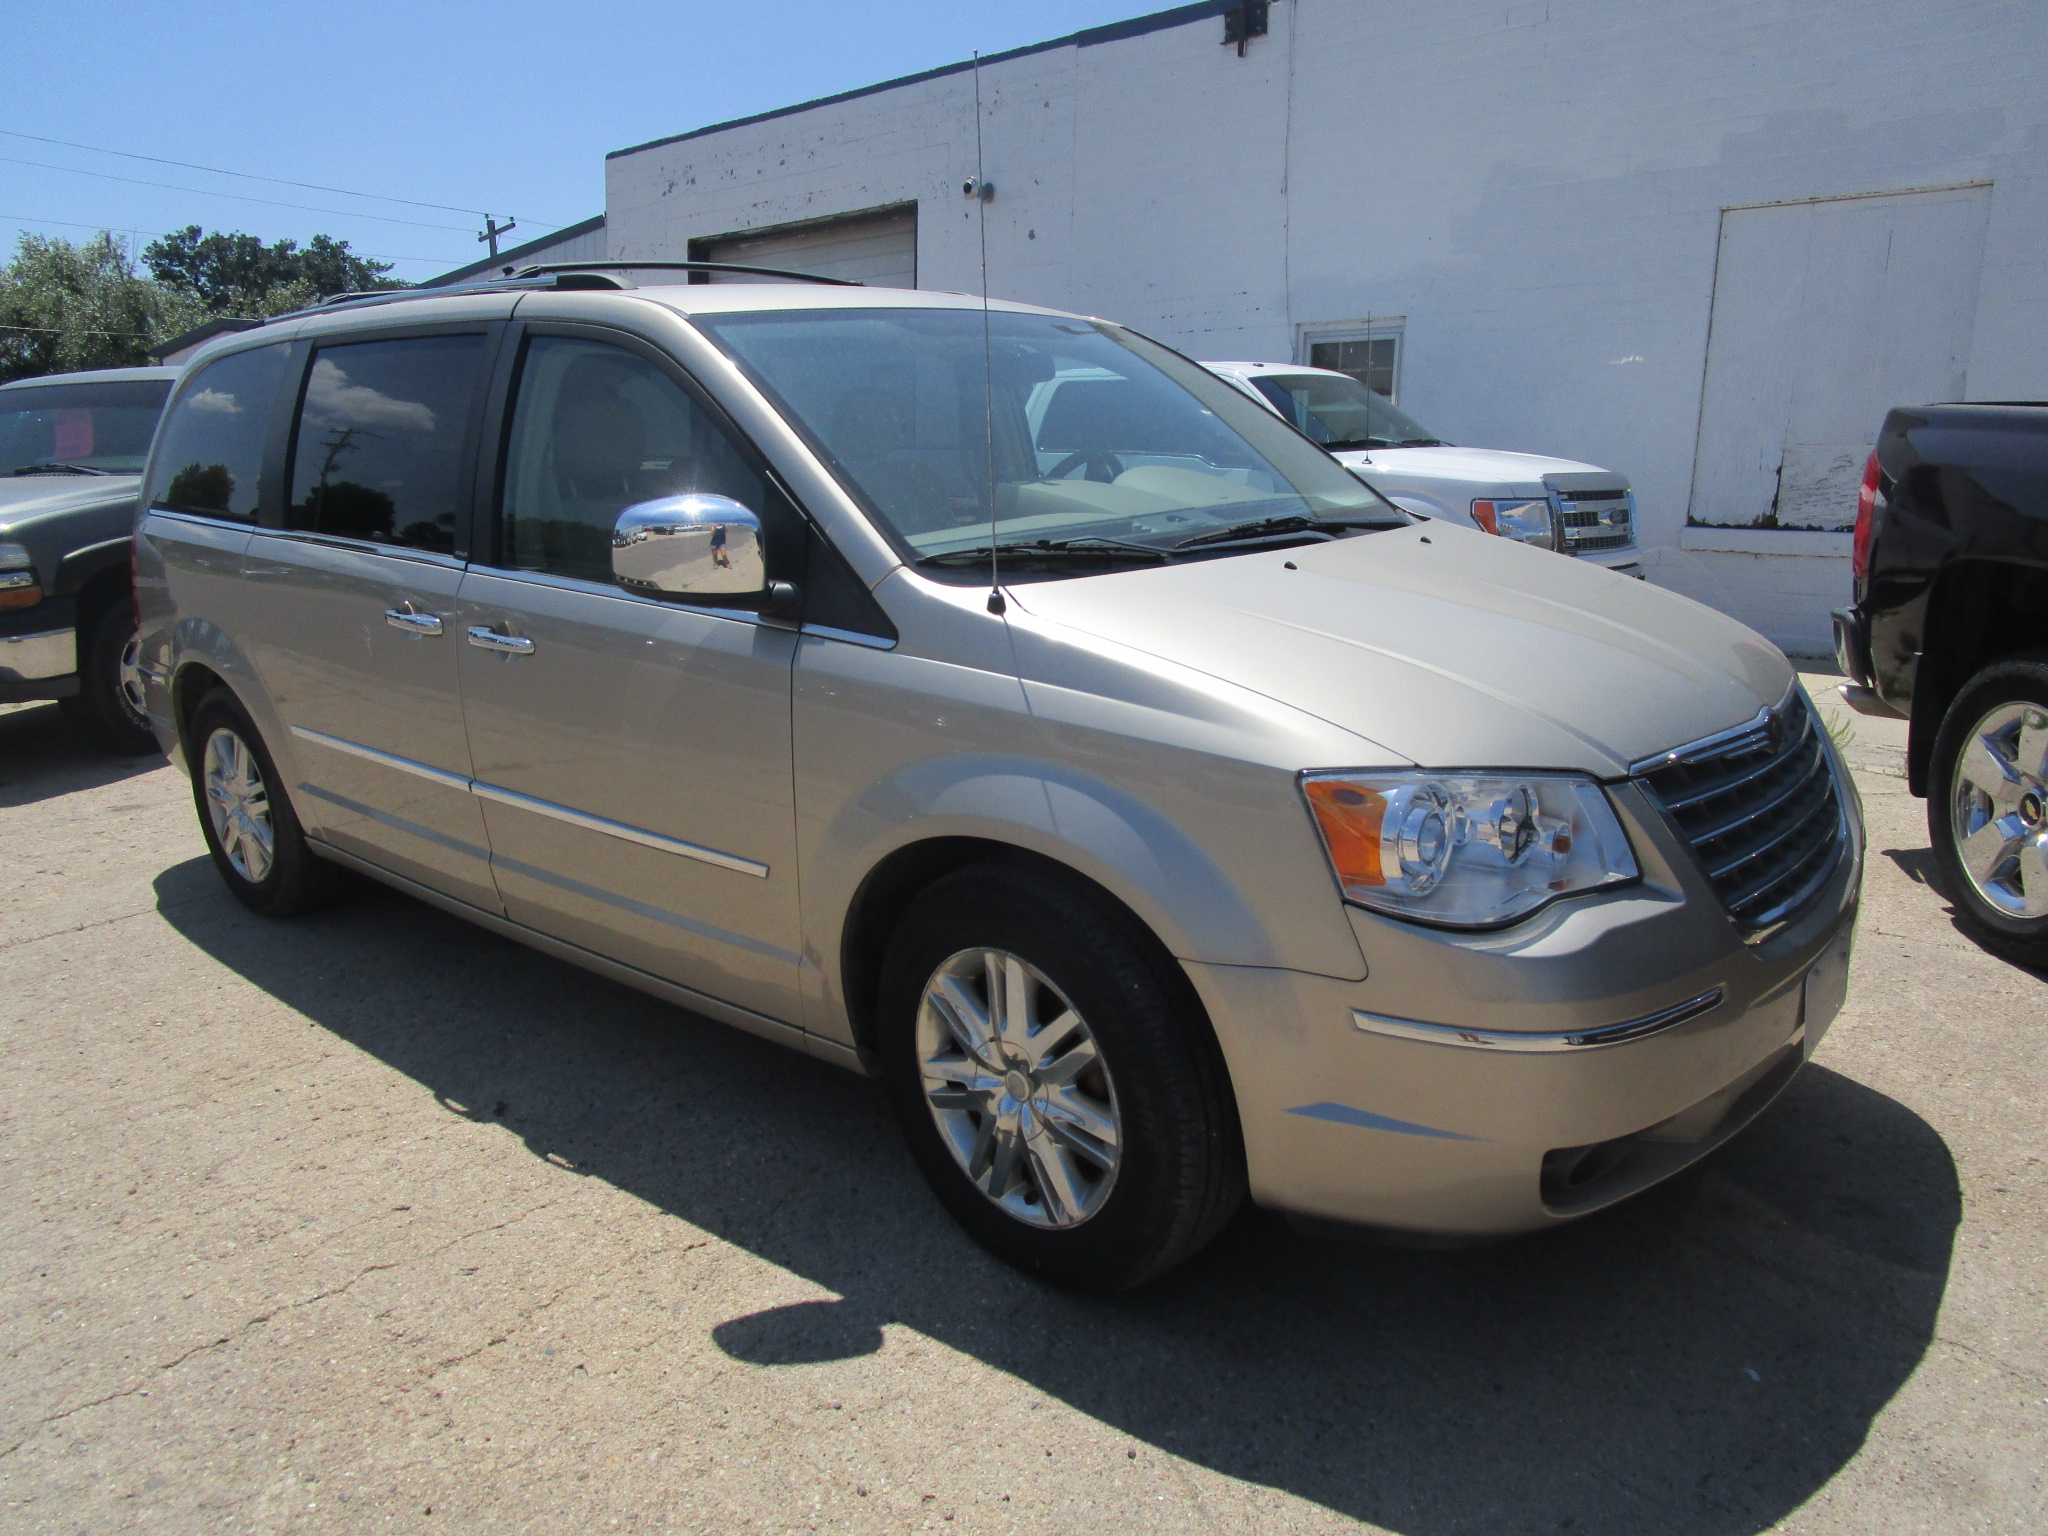 2008 CHRYSLER TOWN & COUNTRY $9,995